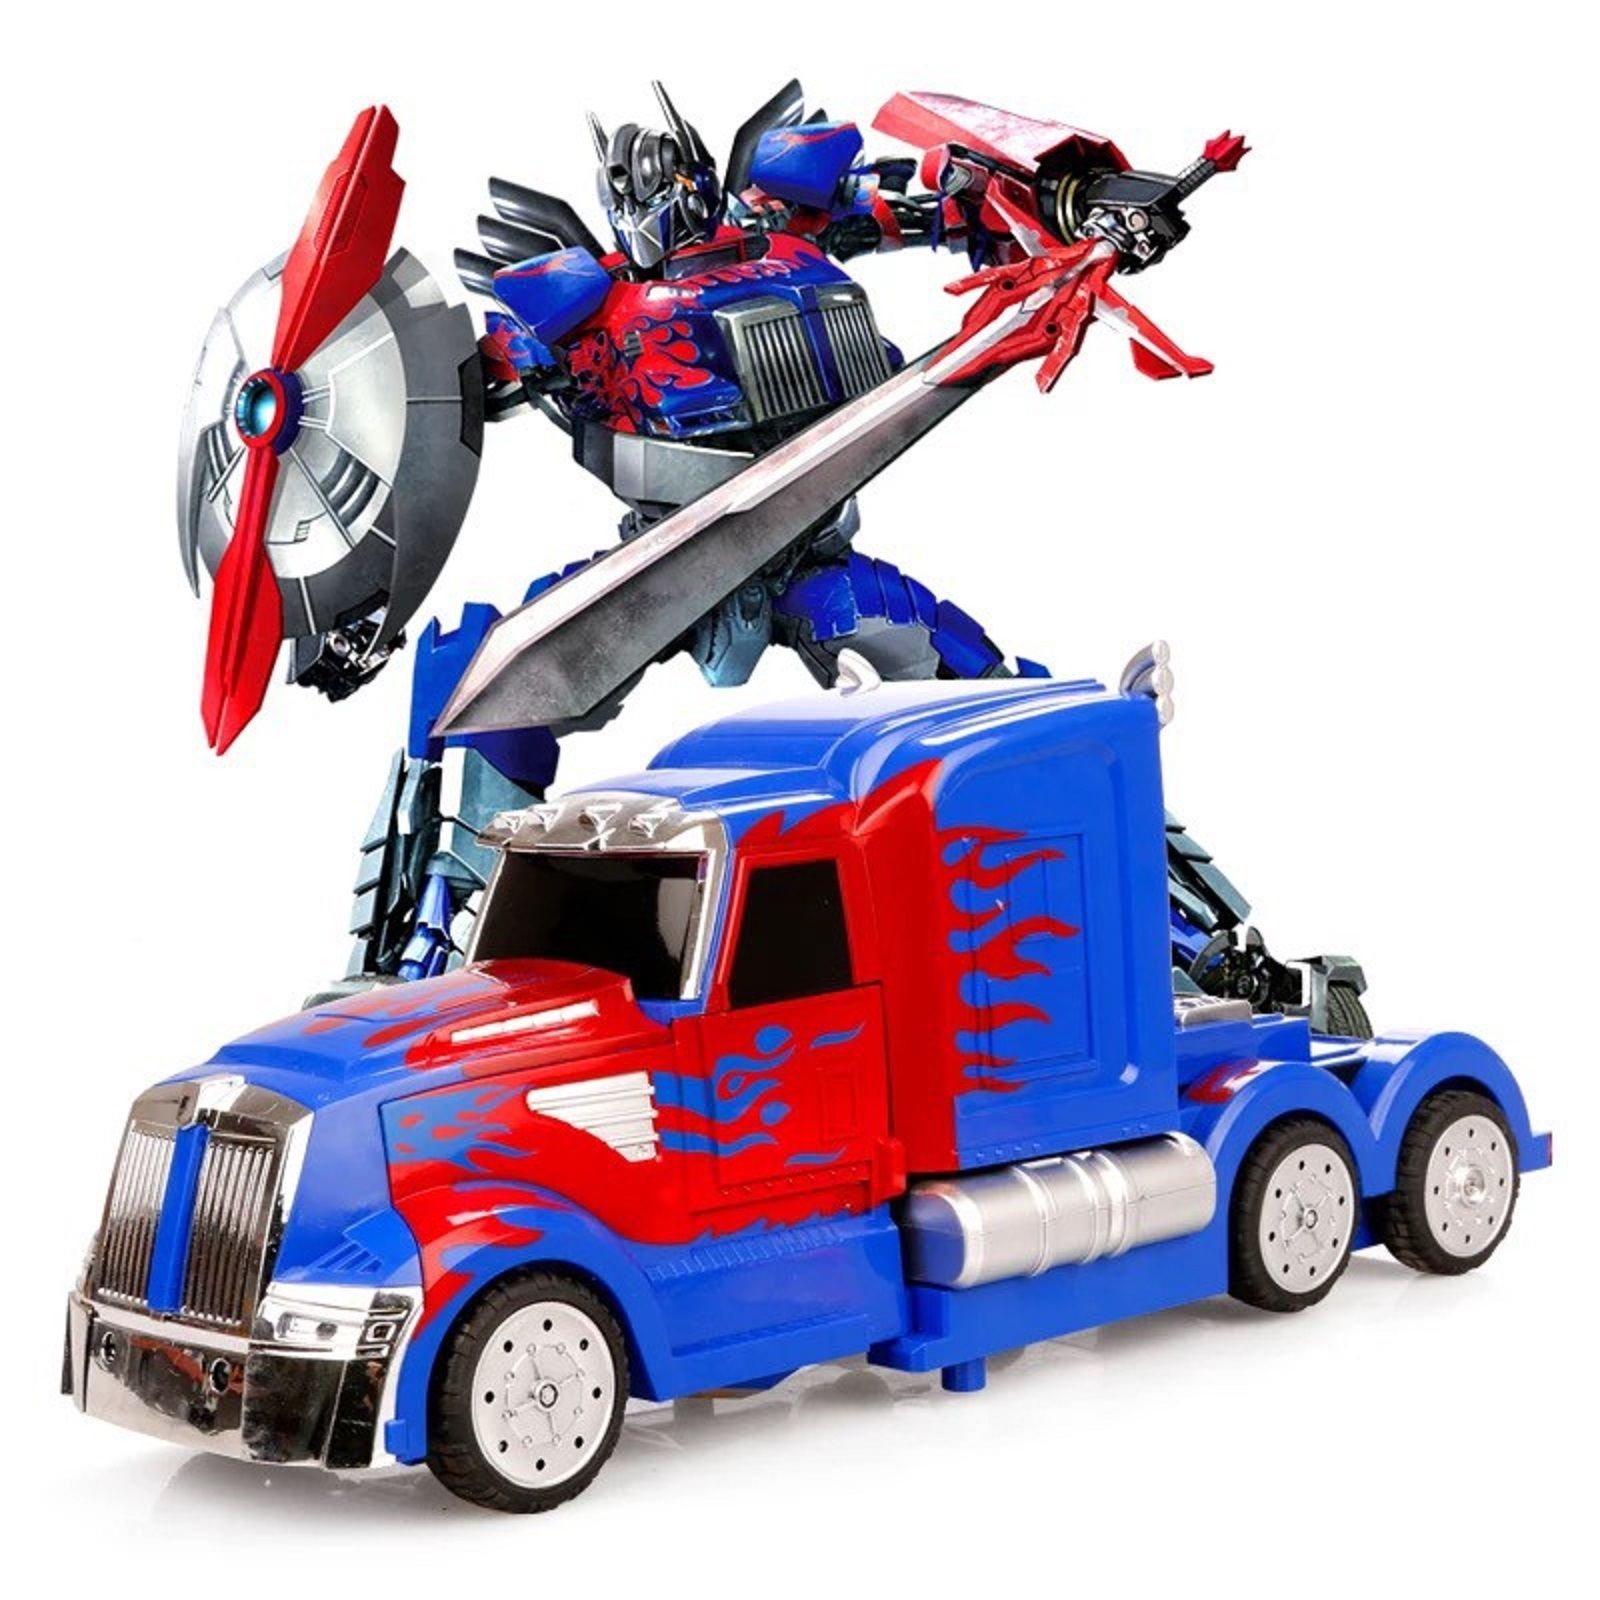 MZ Transformers RC IR Warrior Optimus Prime 8+ Remote Control Robot Car by mz